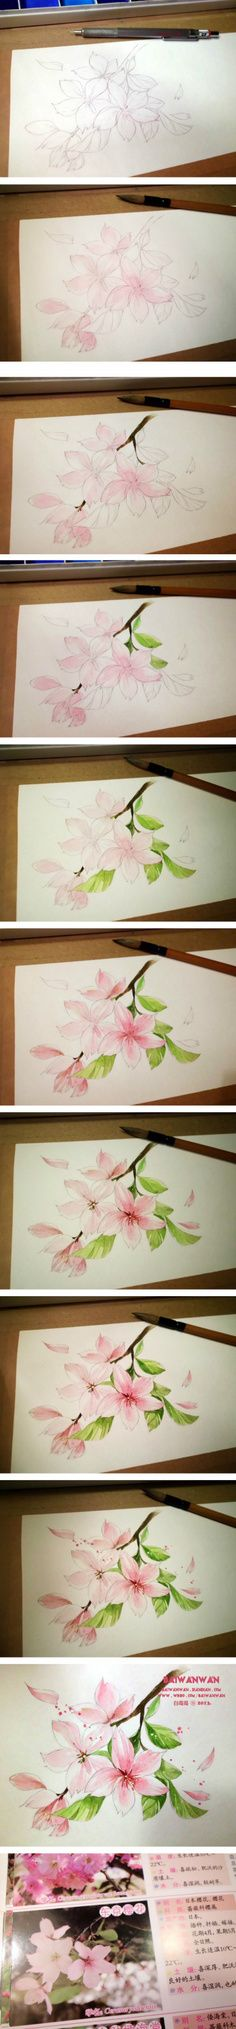 ladies parka jackets Drawing then painting pic of pink flowers